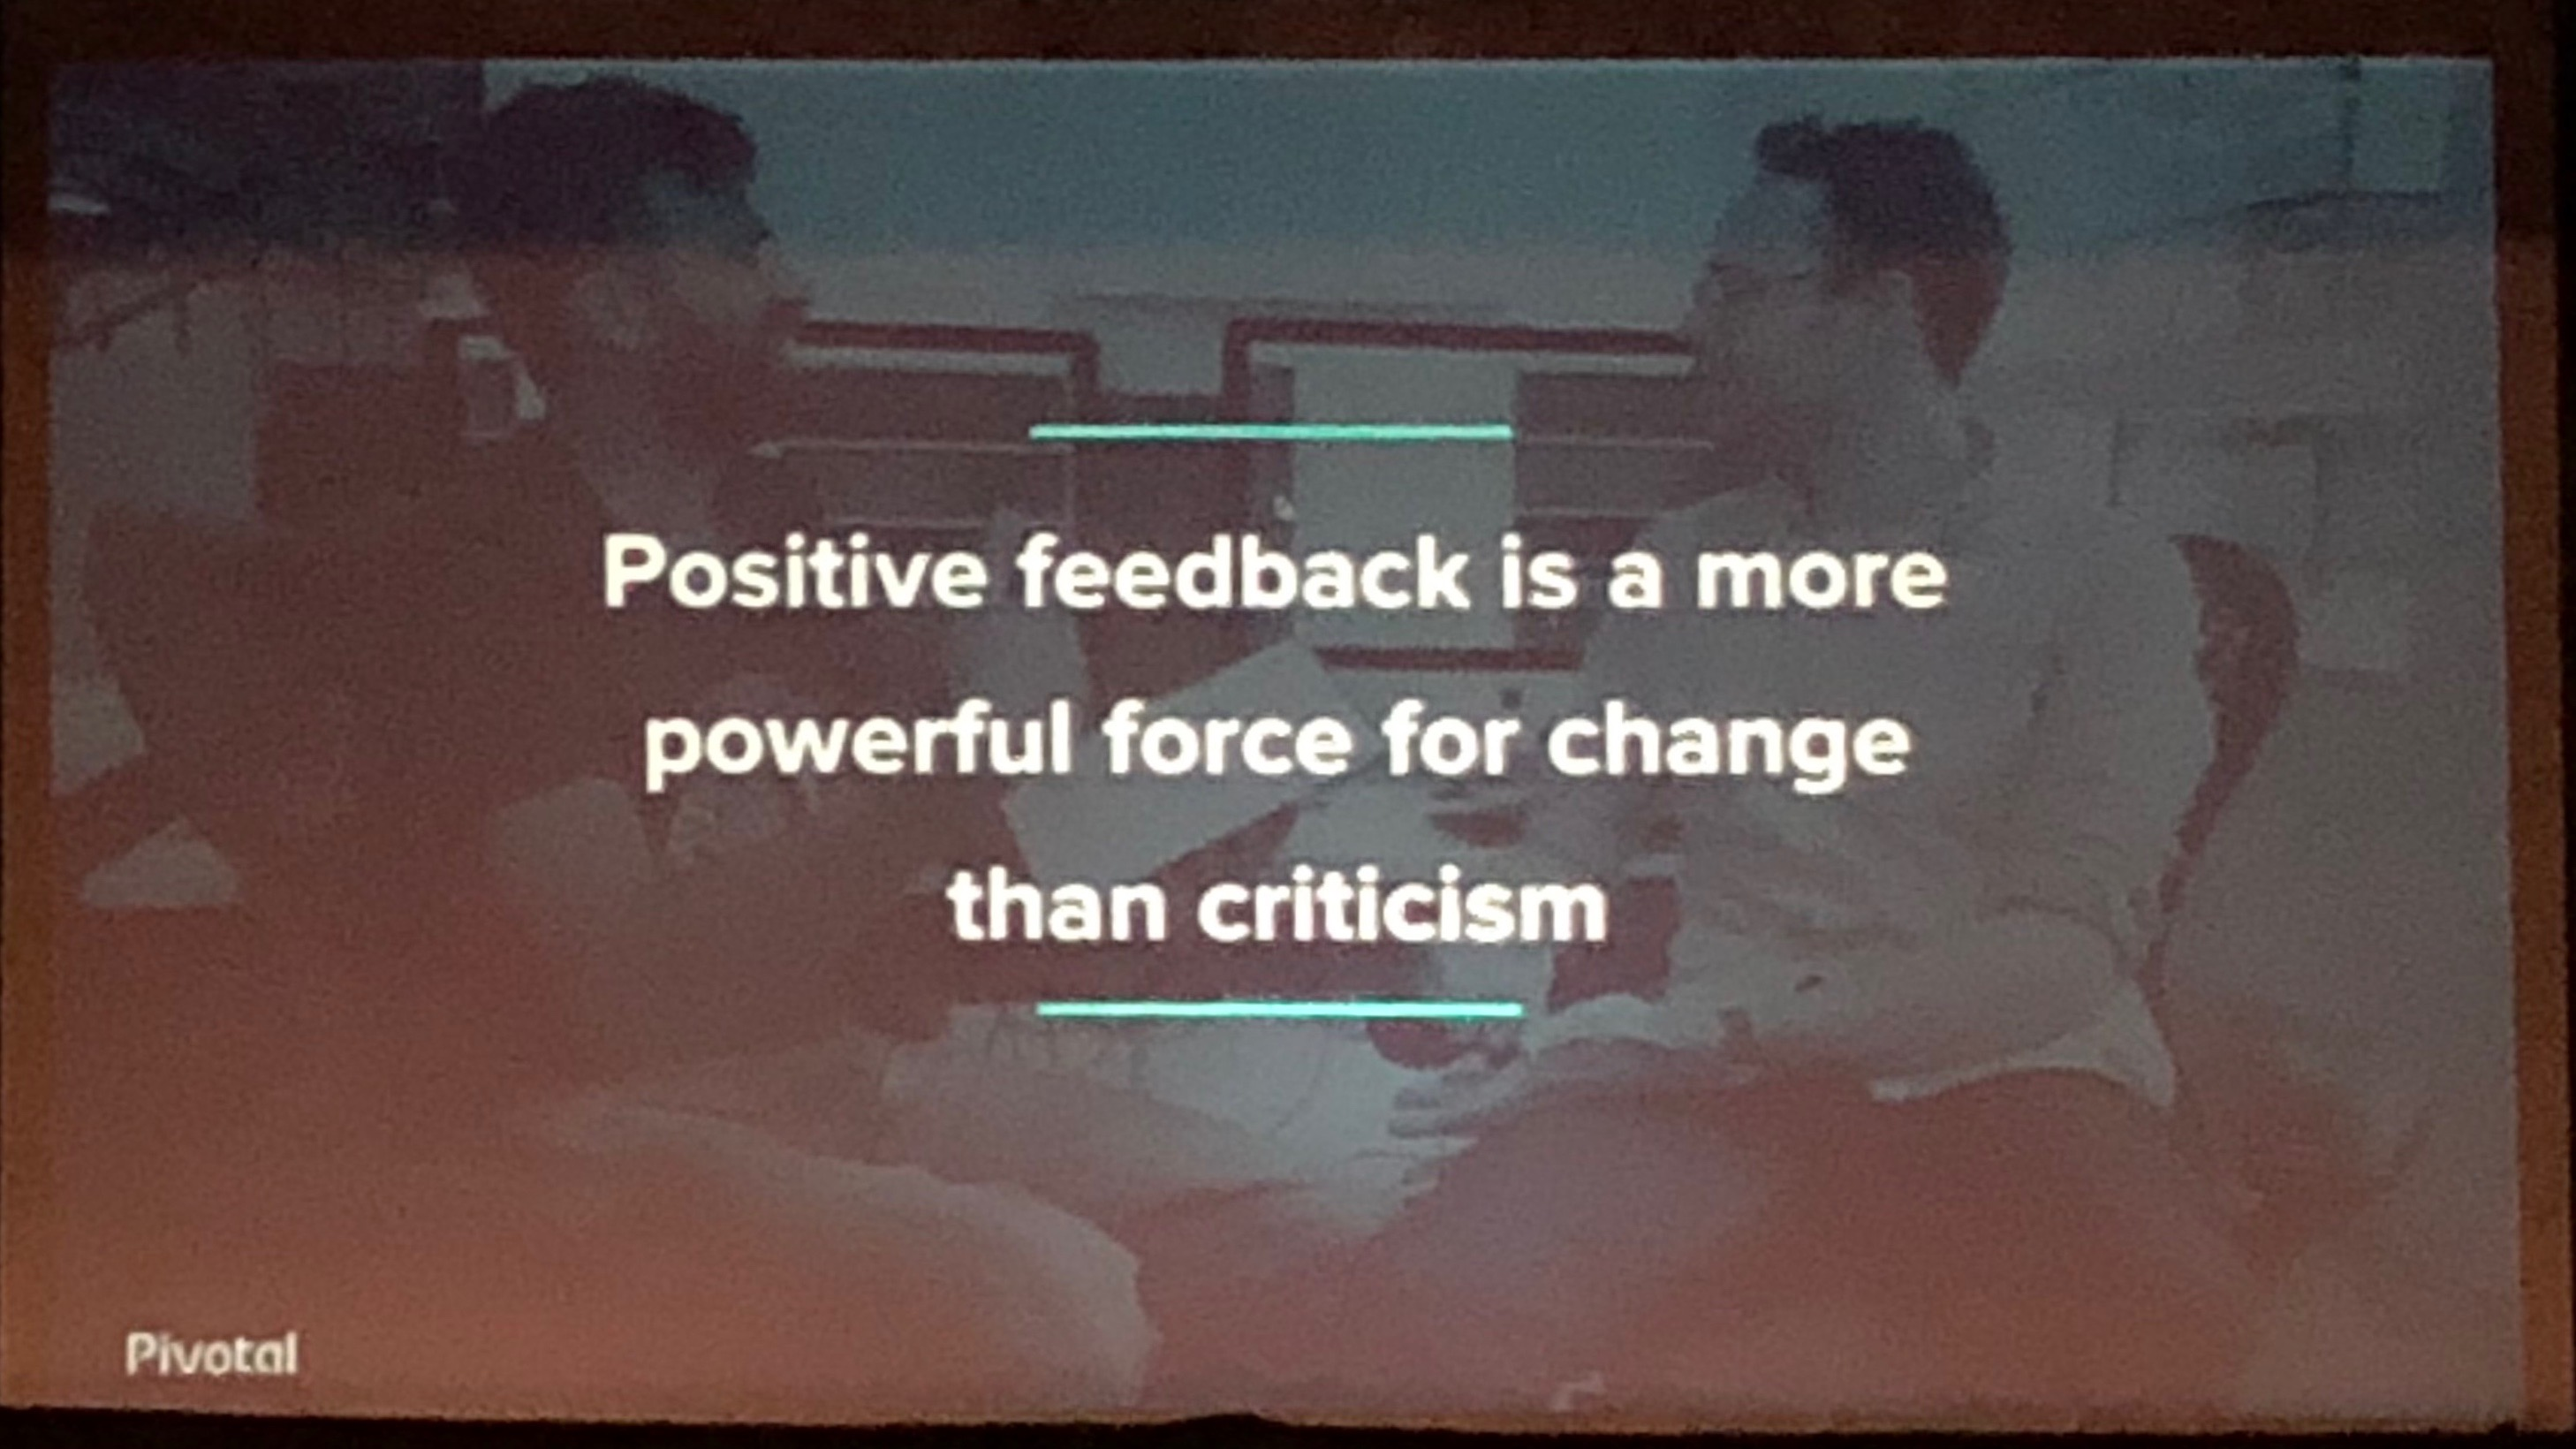 Hendrickson: Positive feedback is a more powerful force for change than criticism